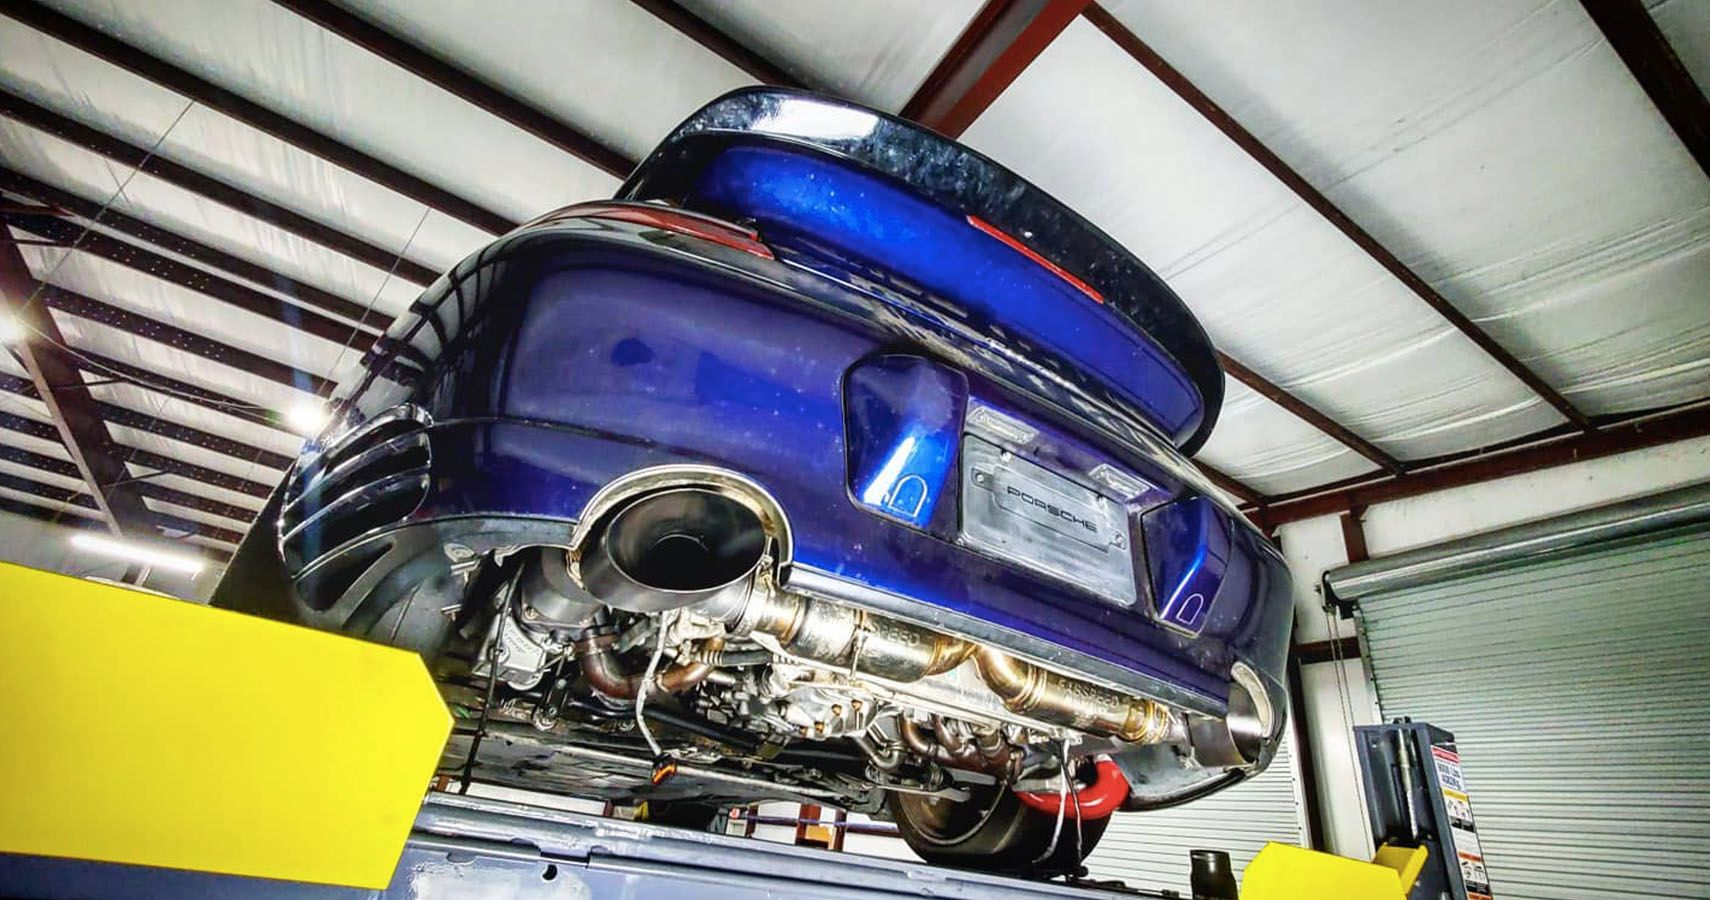 YouTuber Tavarish Discovered A 1000HP Secret In His Barn Find 996 Porsche Turbo